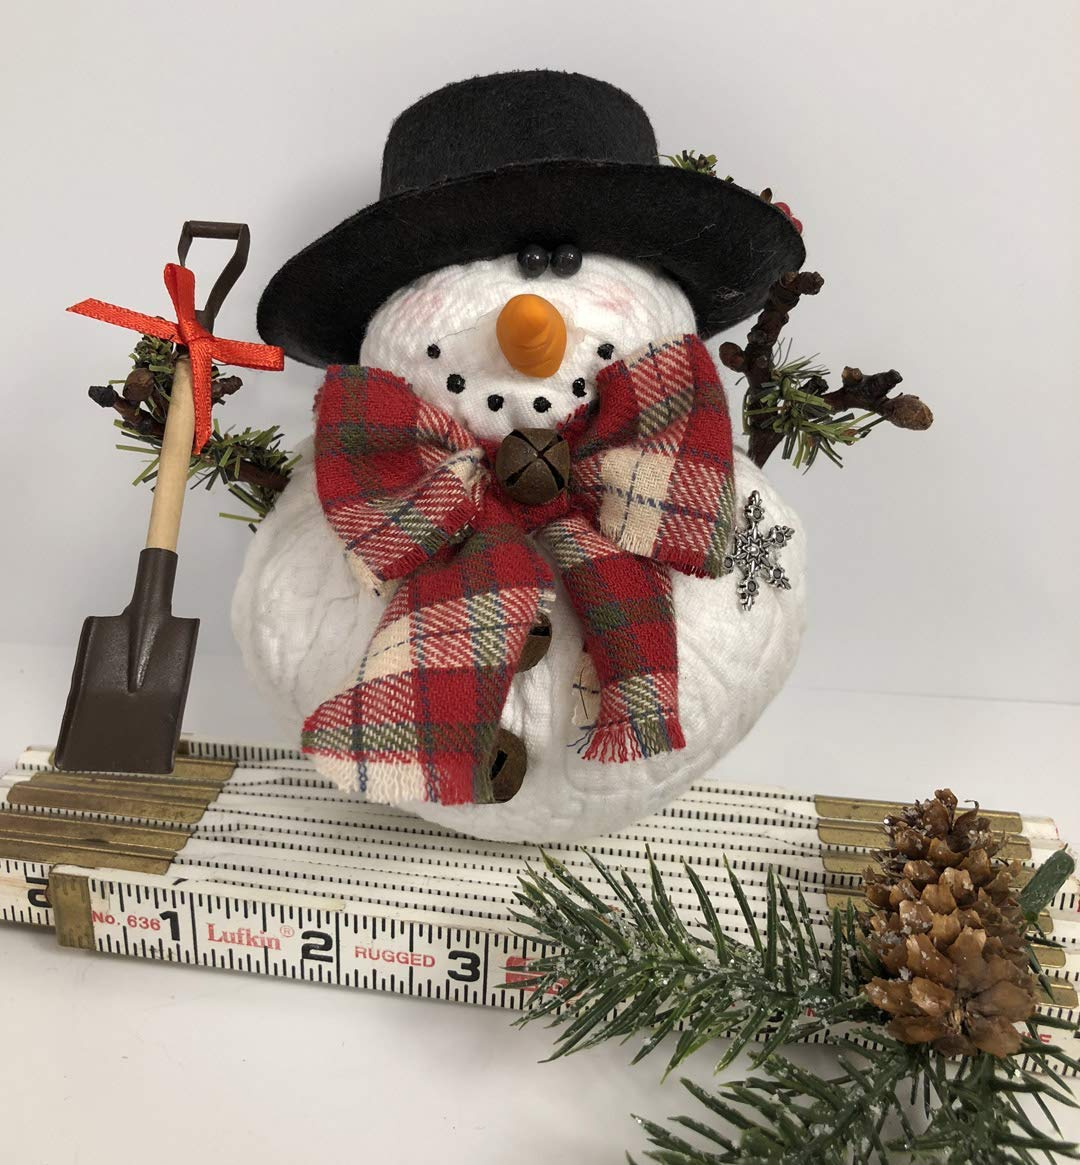 1 INCH Realistic Orange for Crafting Decorative Holiday Hobby Hand Made Christmas Winter Snowmen Snowman Carrot Nose Snowmen Noses SIX